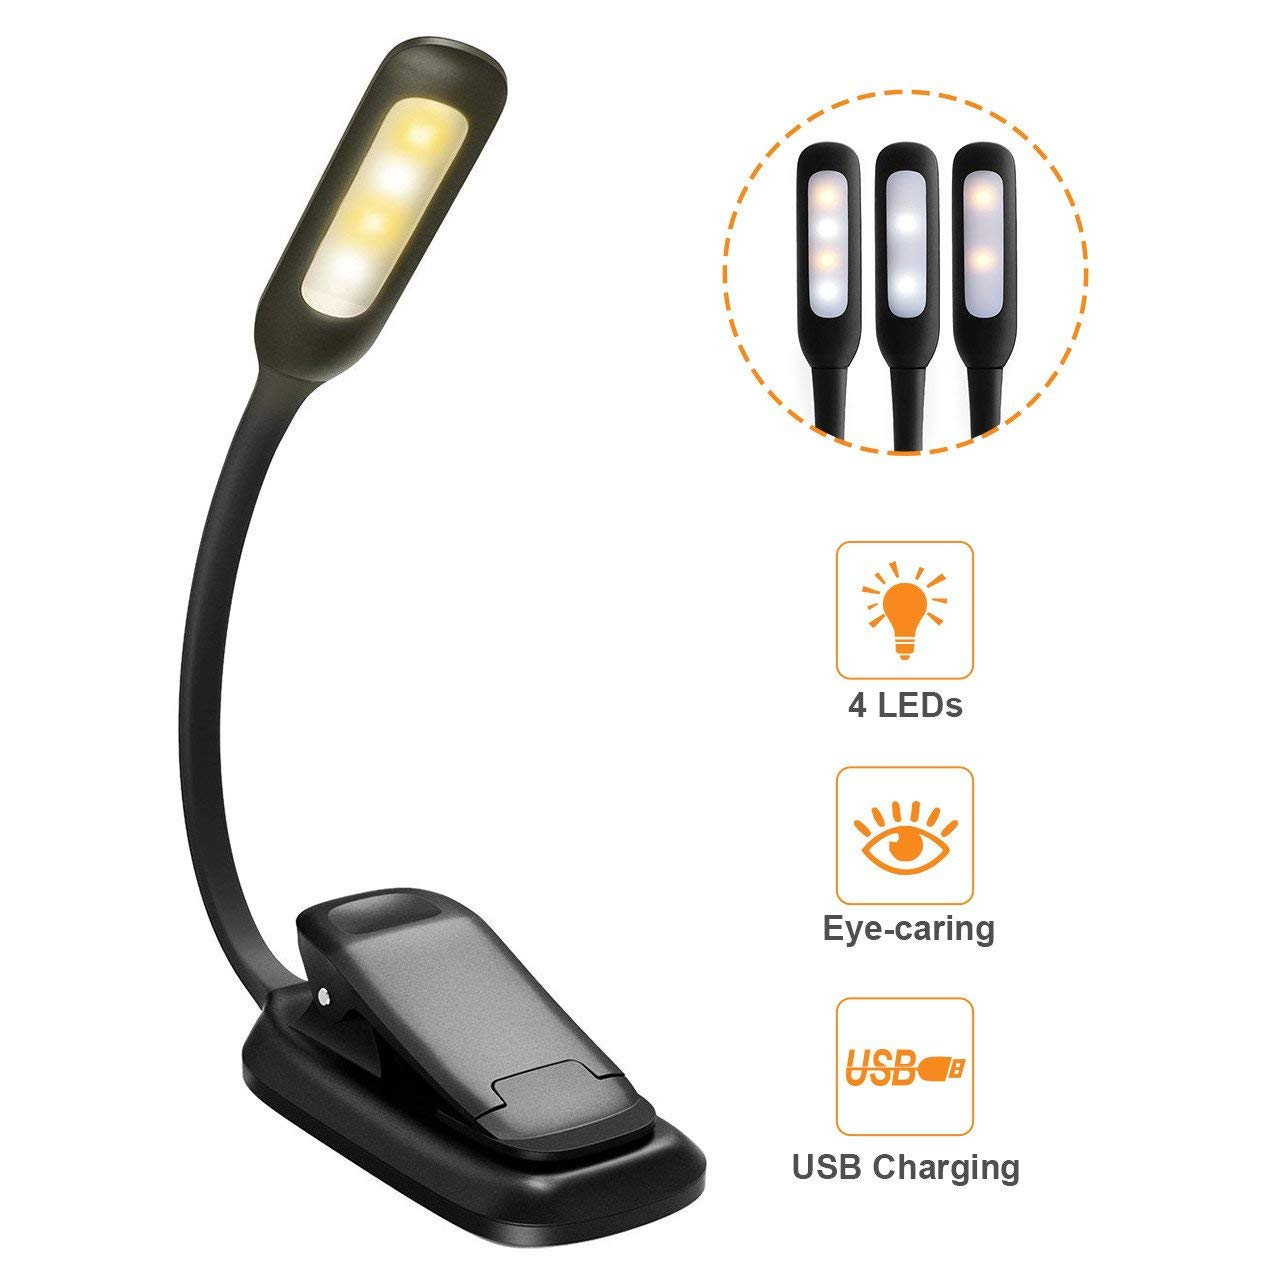 Book Light, Rechargeable Clip-On LED Reading Light with 3-in-1 Modes(White & Warm), Eye Protection Brightness for Kindle, Night Reading